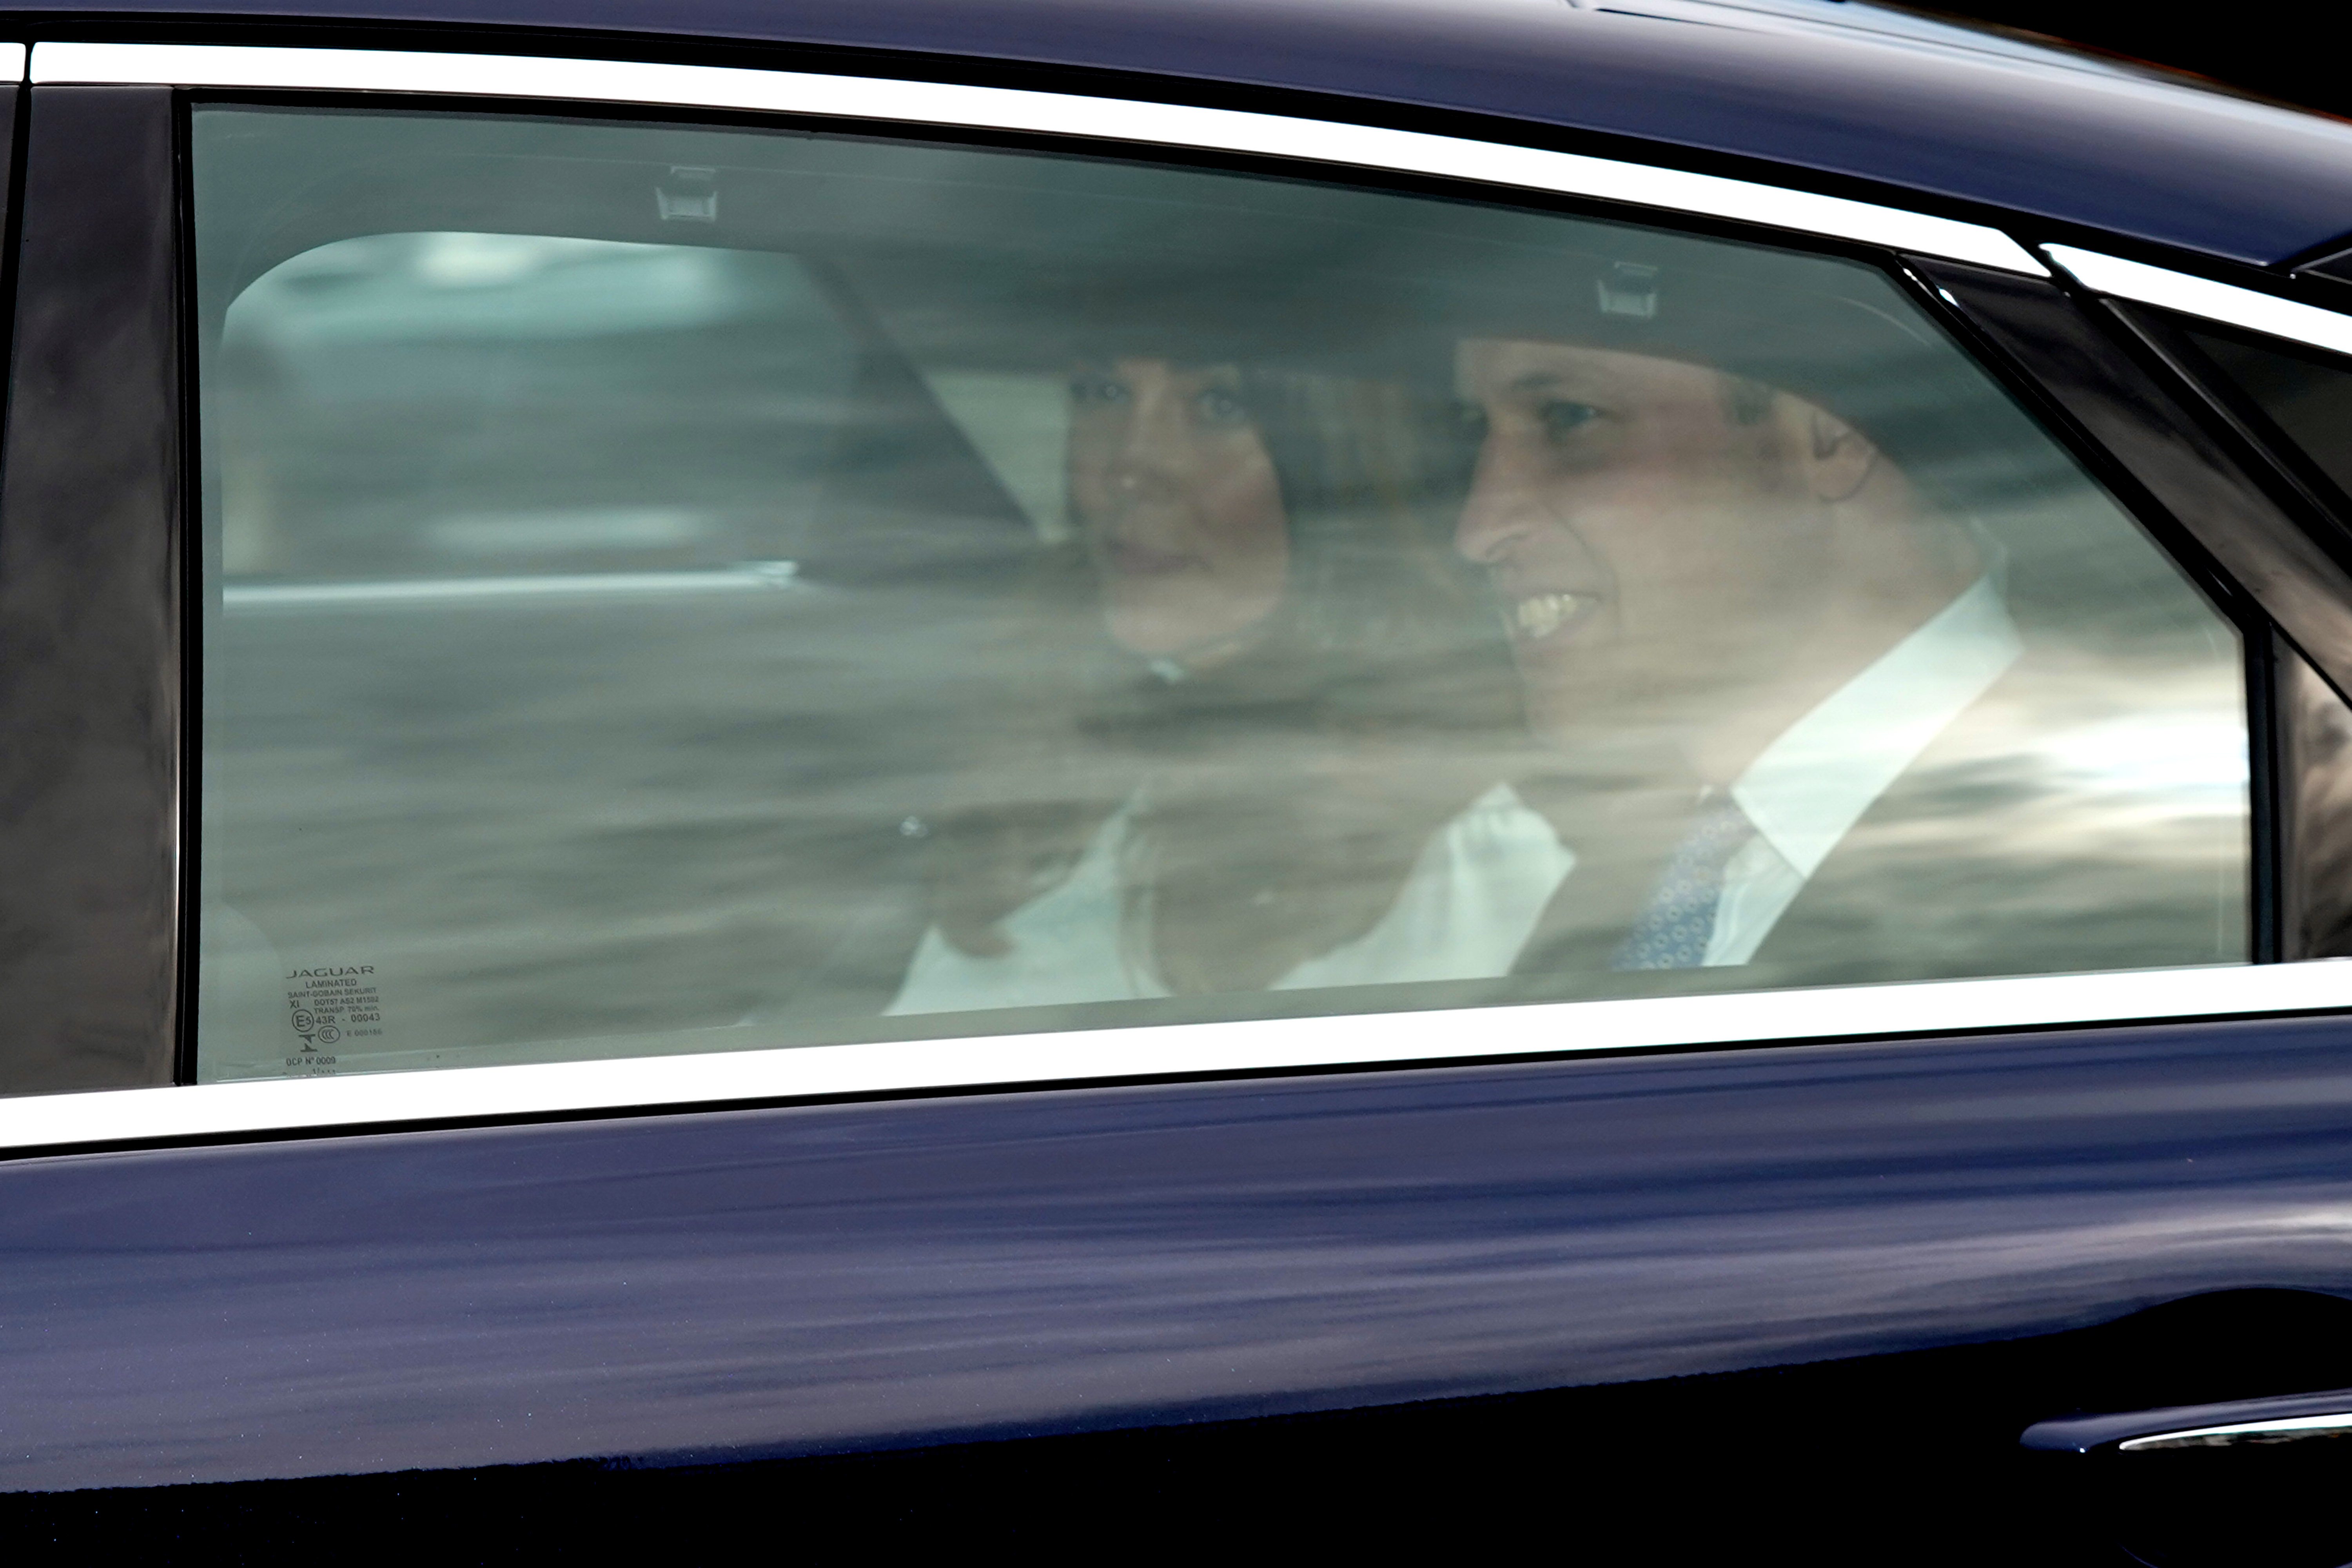 Royals make there way to Buckingham Palace for a reception marking Charles' 50 Years As Prince of Wales.